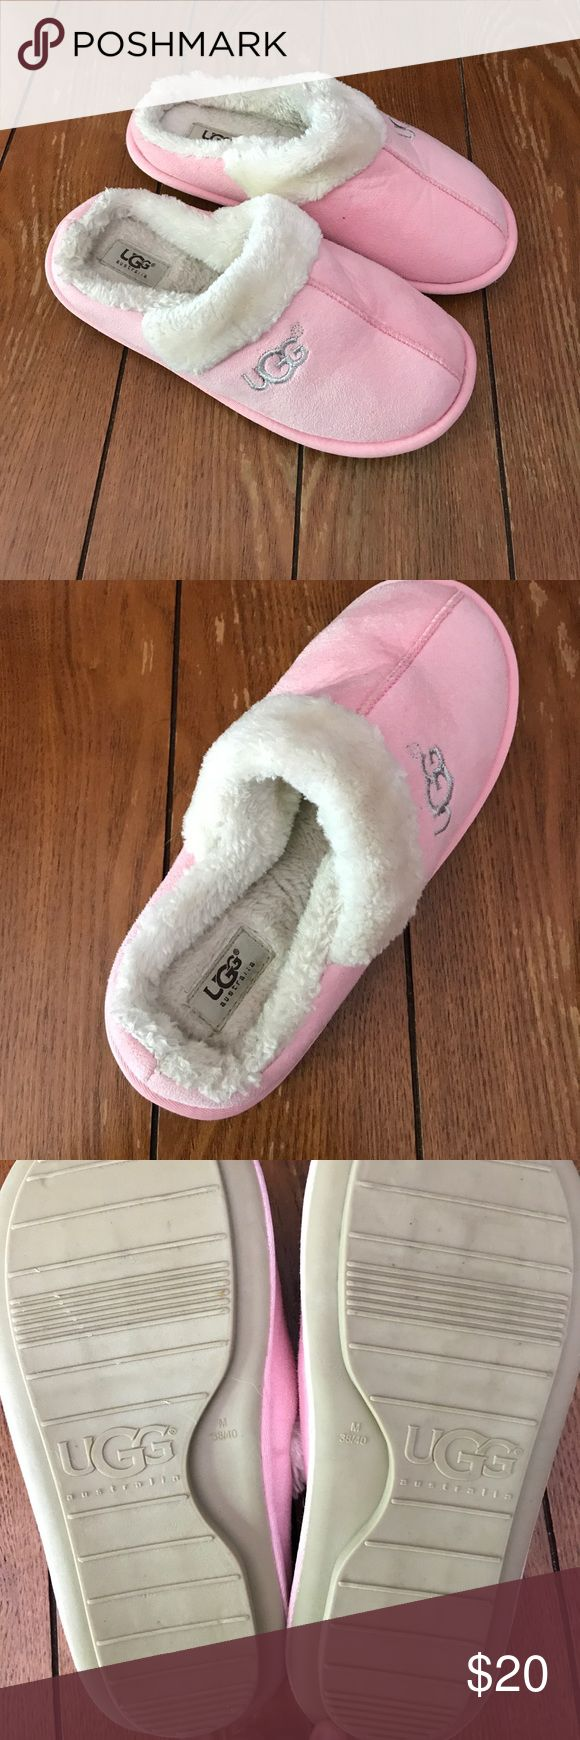 1️⃣HOUR SALE💰 Ugg slippers Ugg slippers in a baby pink color. They are in awesome condition. The fur on outside is in amazing condition. Fur on inside is in good condition. I tried them on as a Christmas gift and they never fit, I wore them once or twice. These shoes have NO stains on the outside and the bottom of the shoe has a minimal dirt but that is expected (& can be seen in the picture)! Any questions ask below. UGG Shoes Slippers